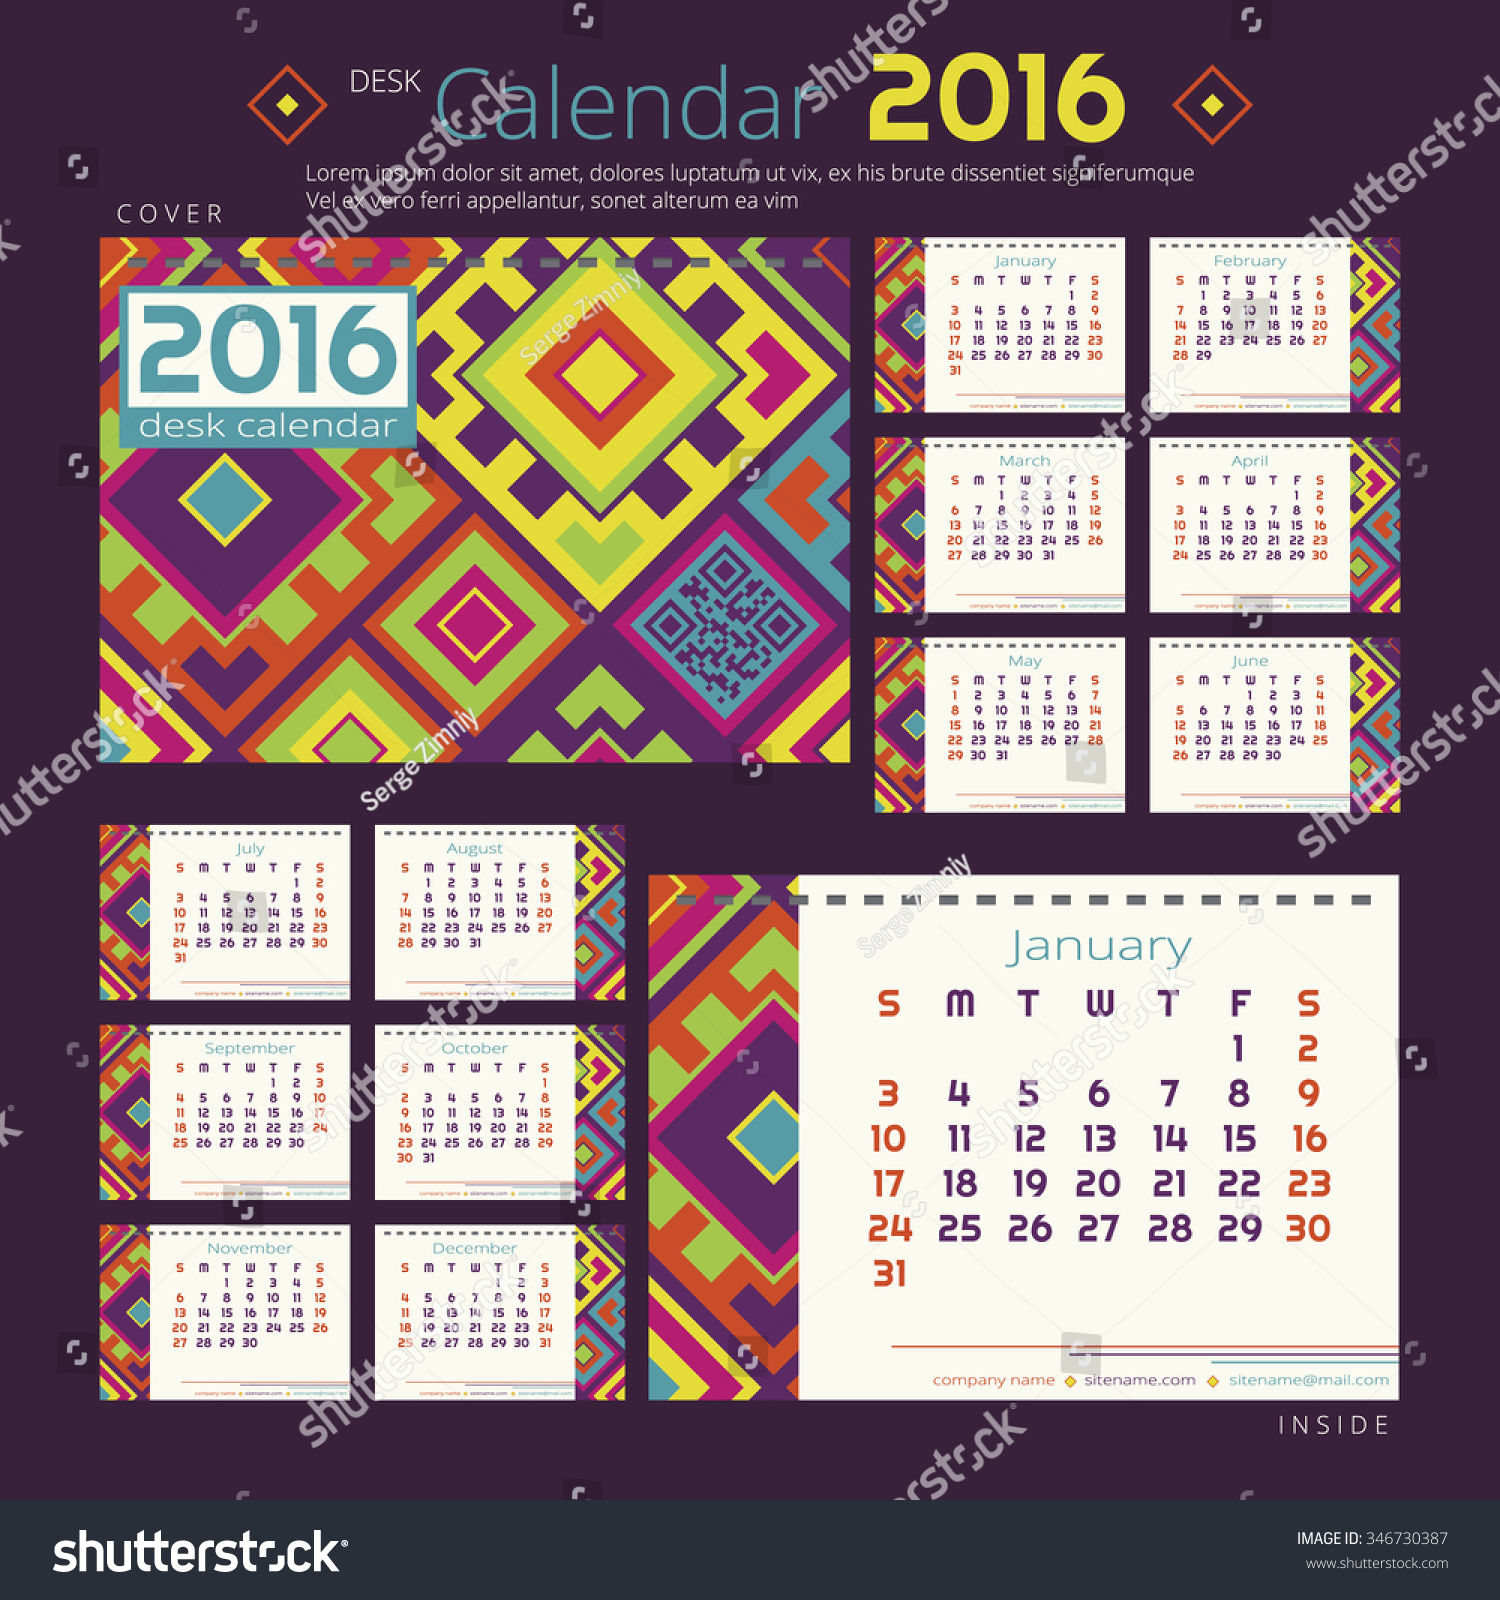 Desk calendar 2016 year with bright geometric design Vector template for 12 months with random